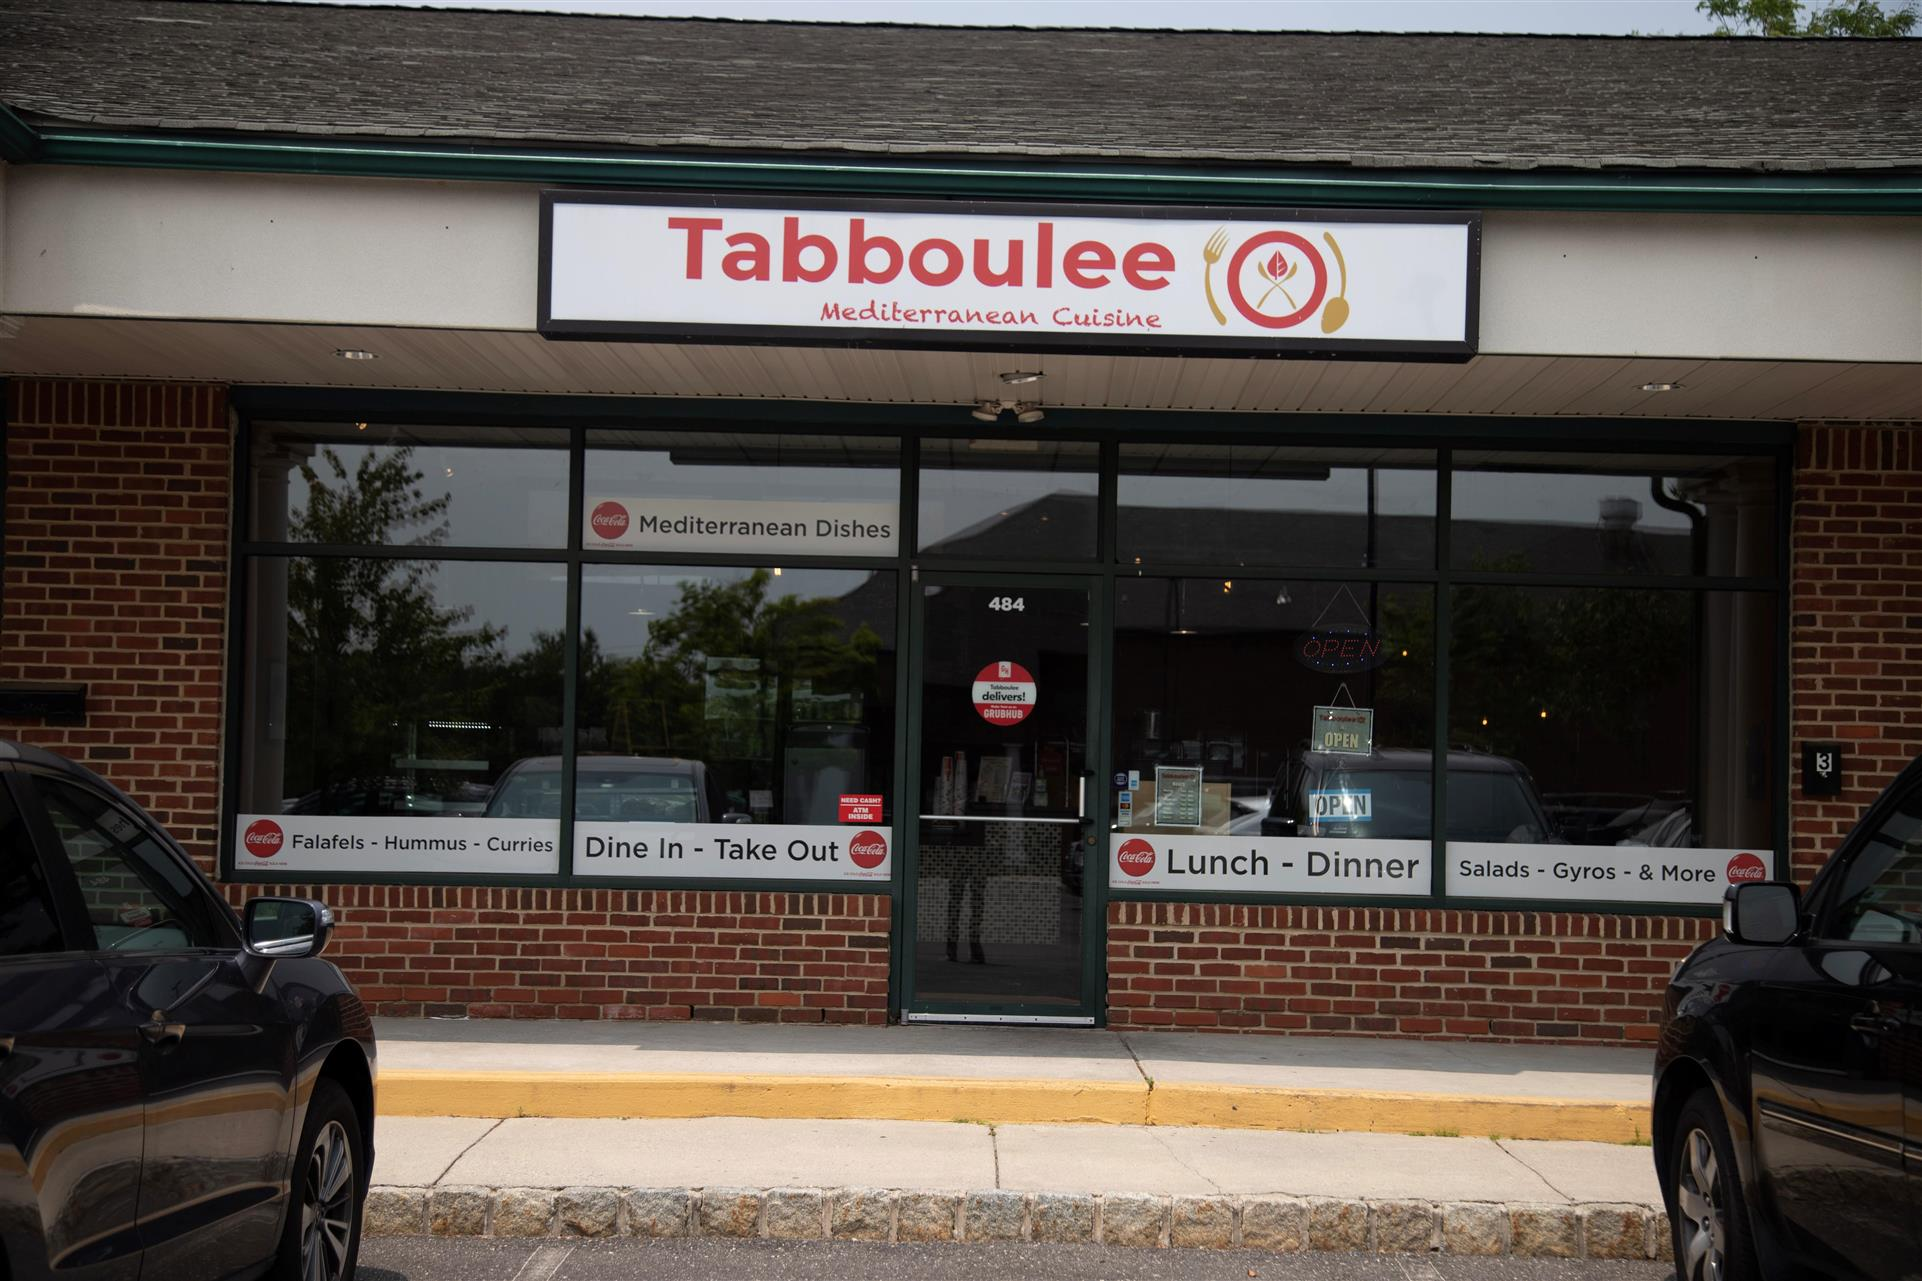 exterior of business with the Tabboulee sign